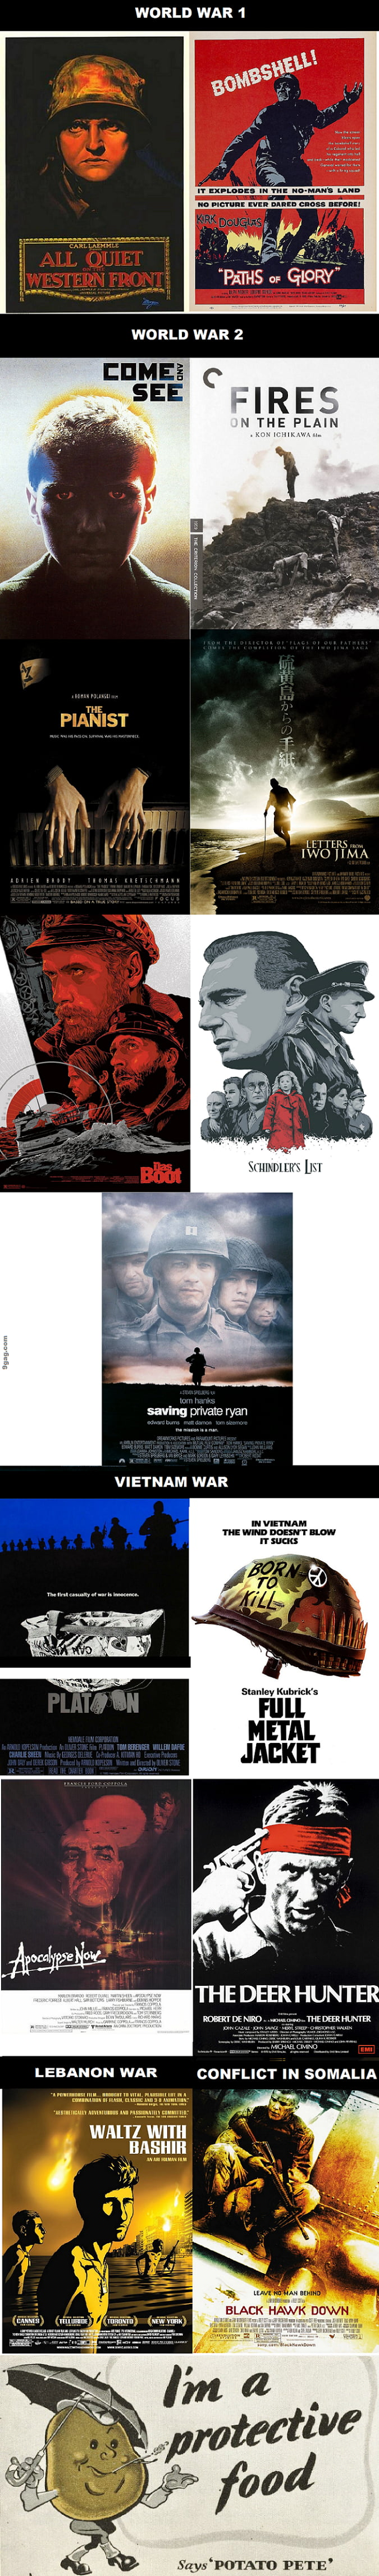 List of some best war movies of all time!